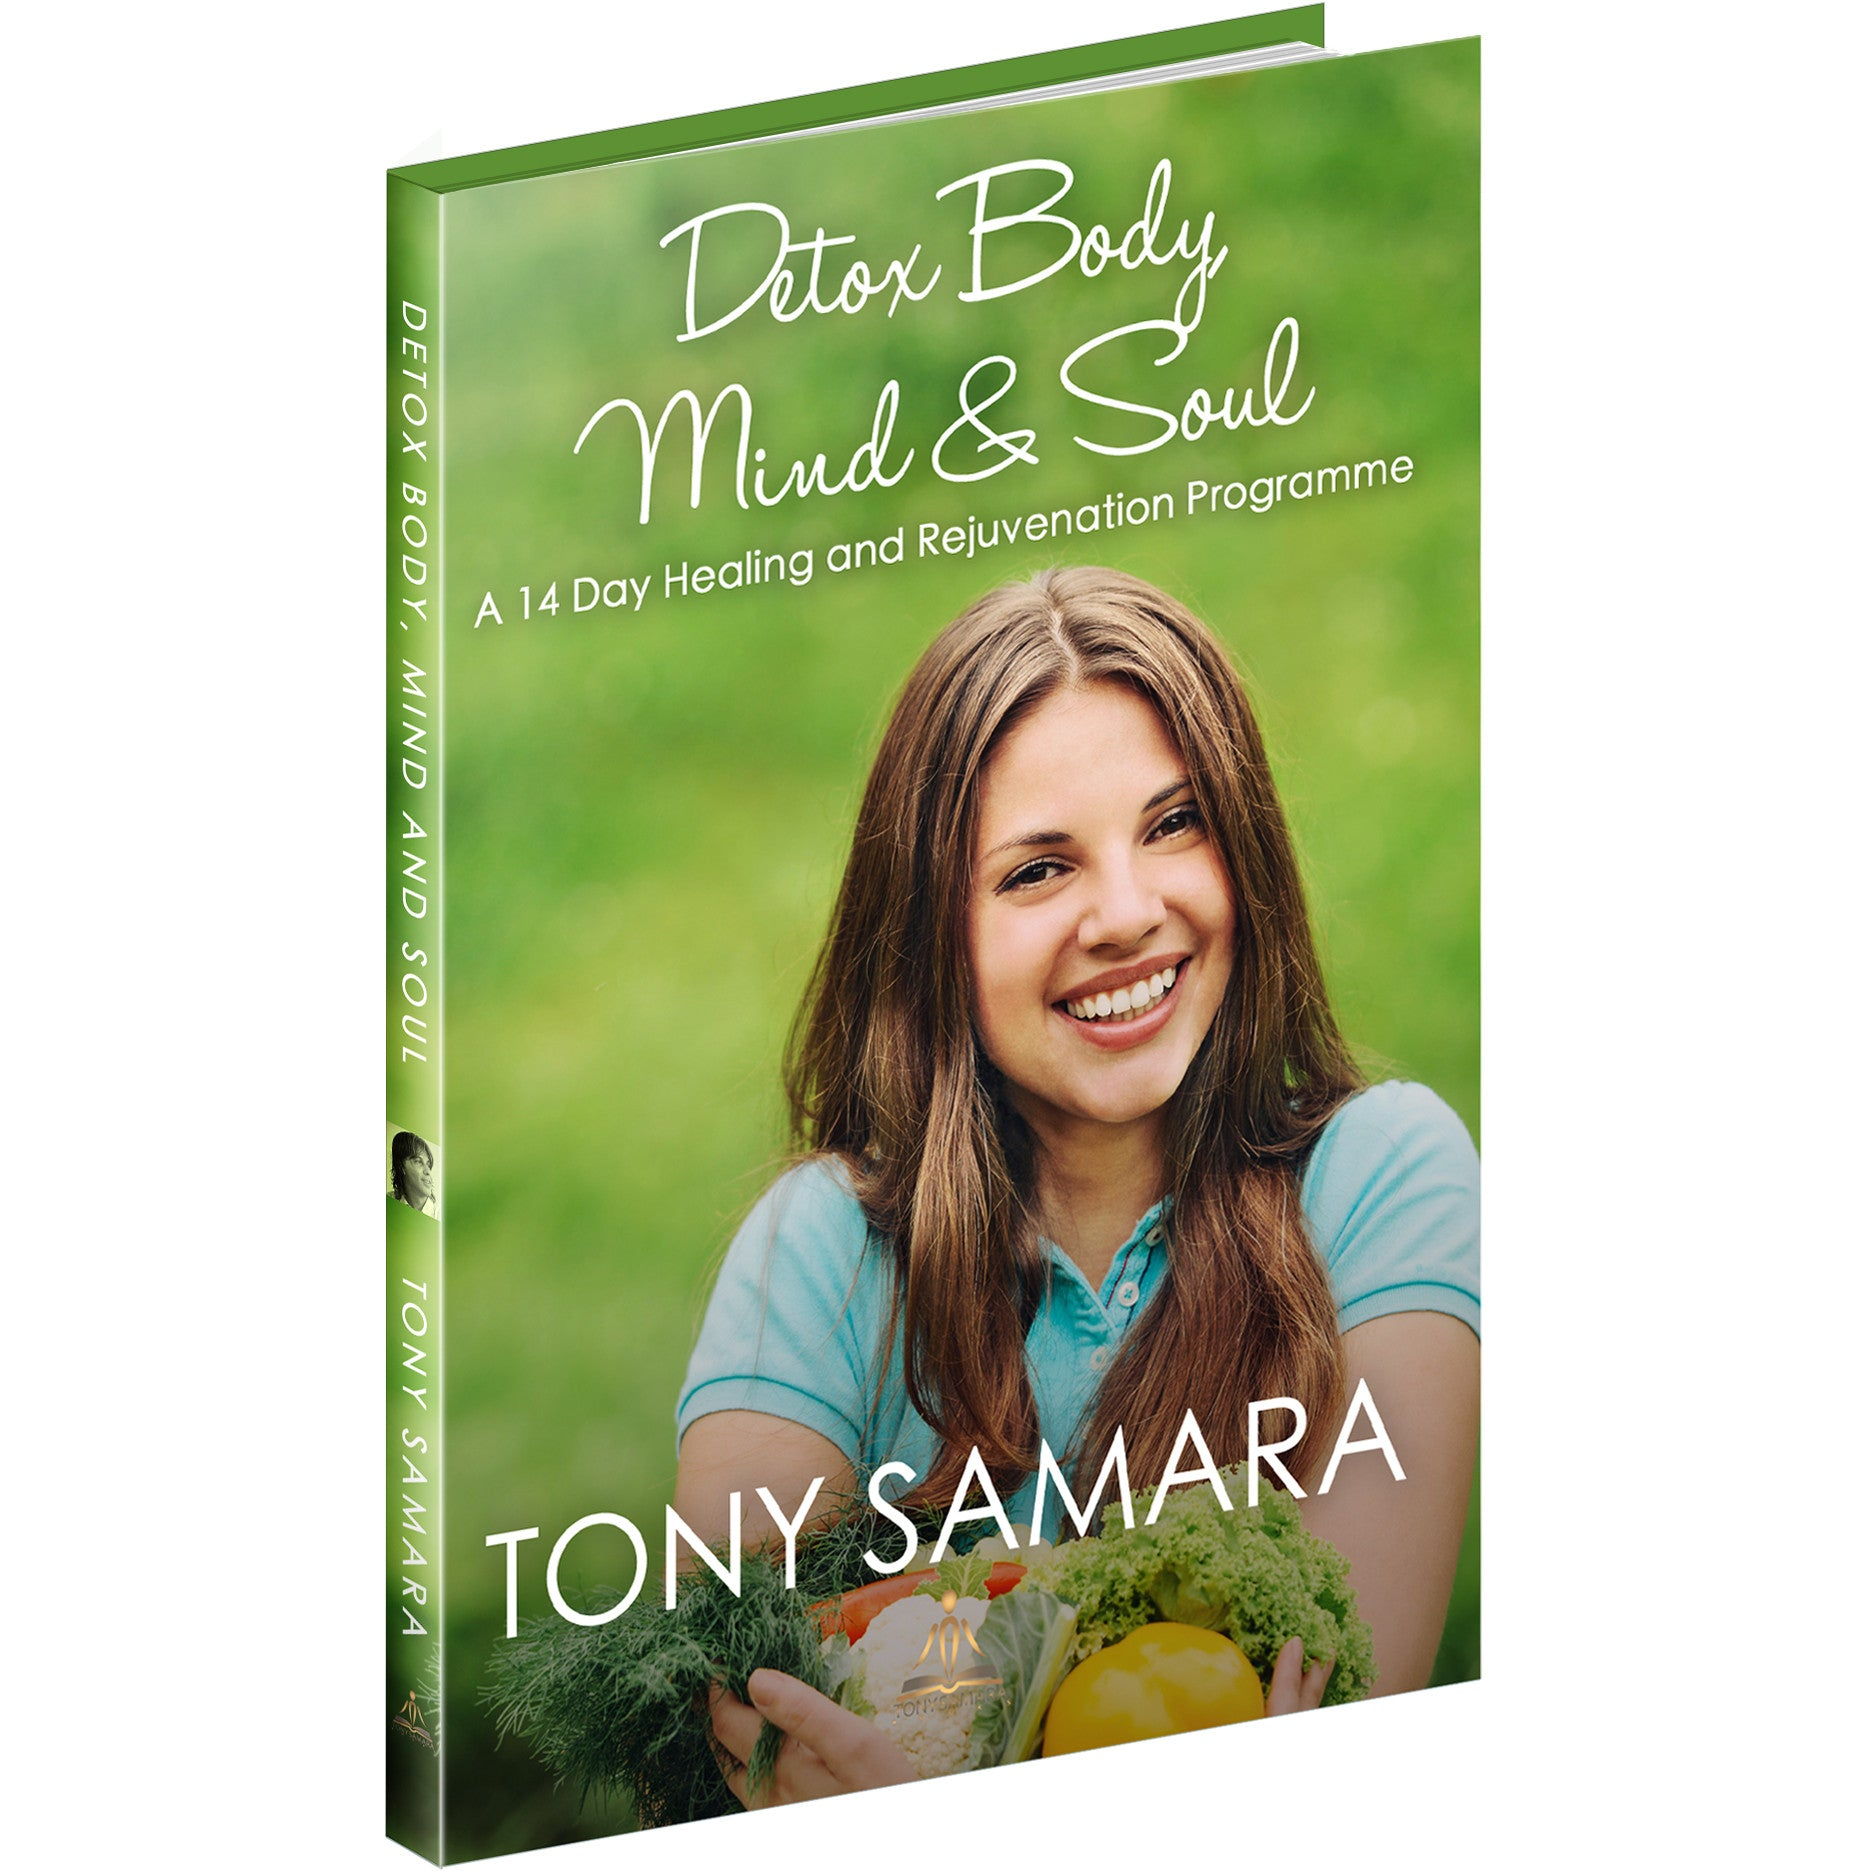 Detox Body, Mind and Soul, an e-Book by Tony Samara (ePUB Download)